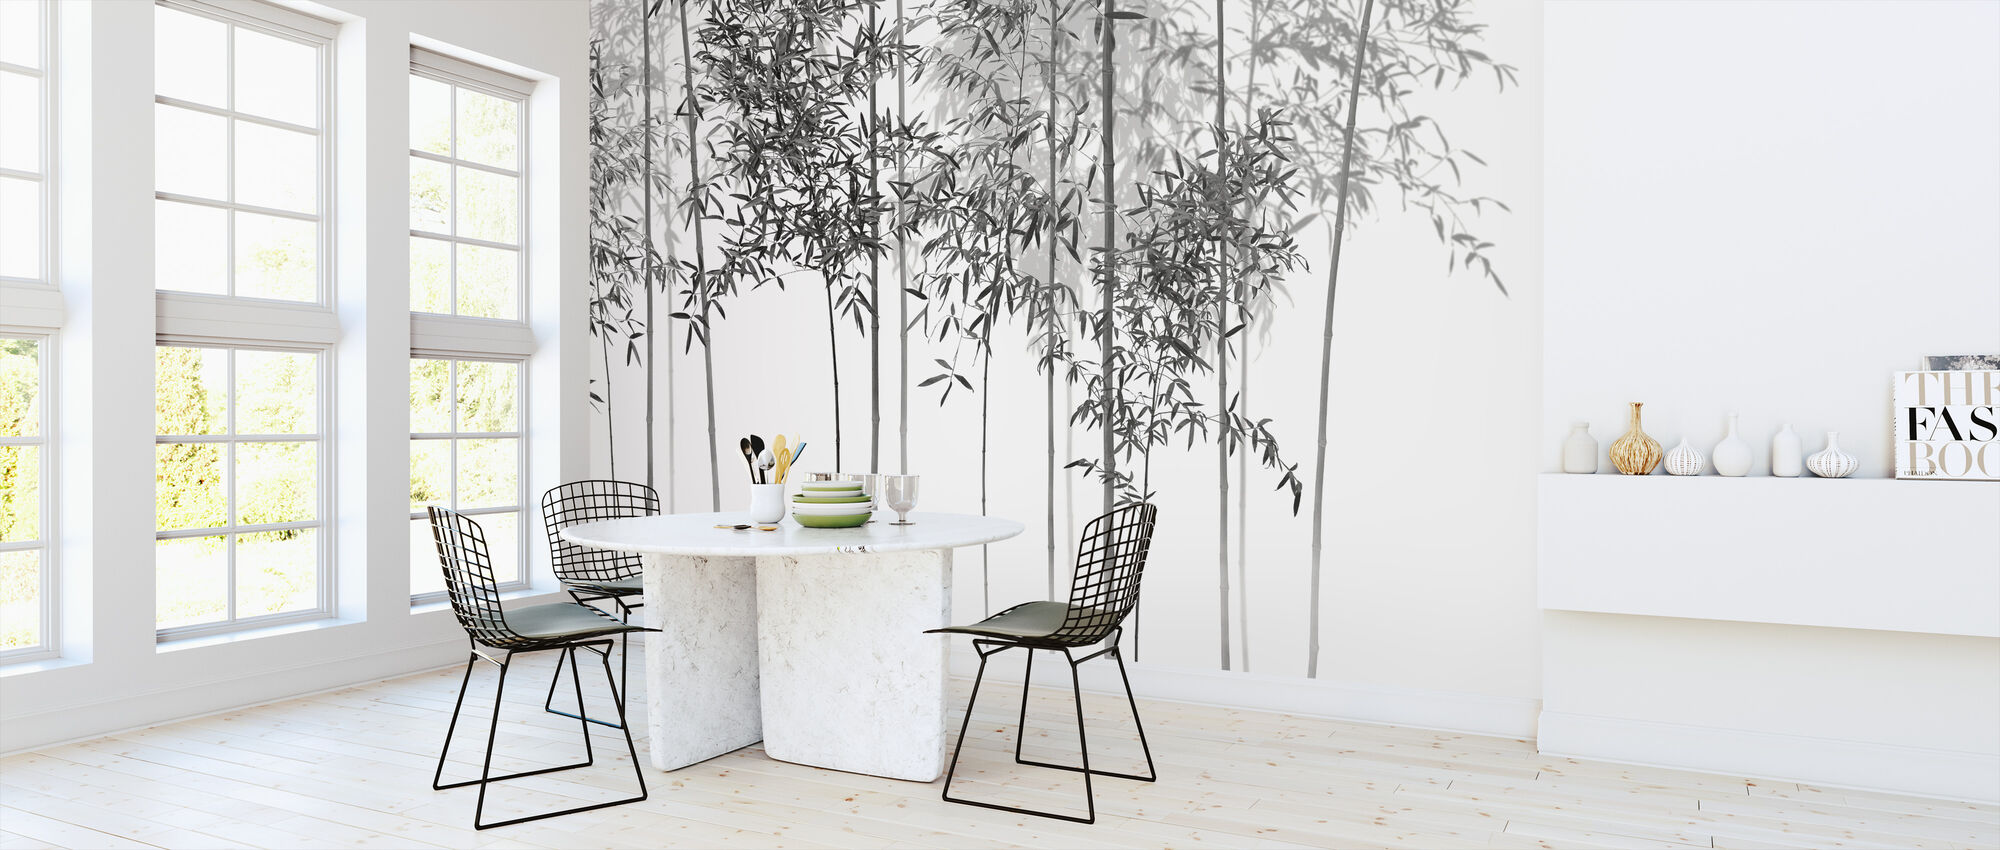 Bamboo Trees View - bw - Wallpaper - Kitchen